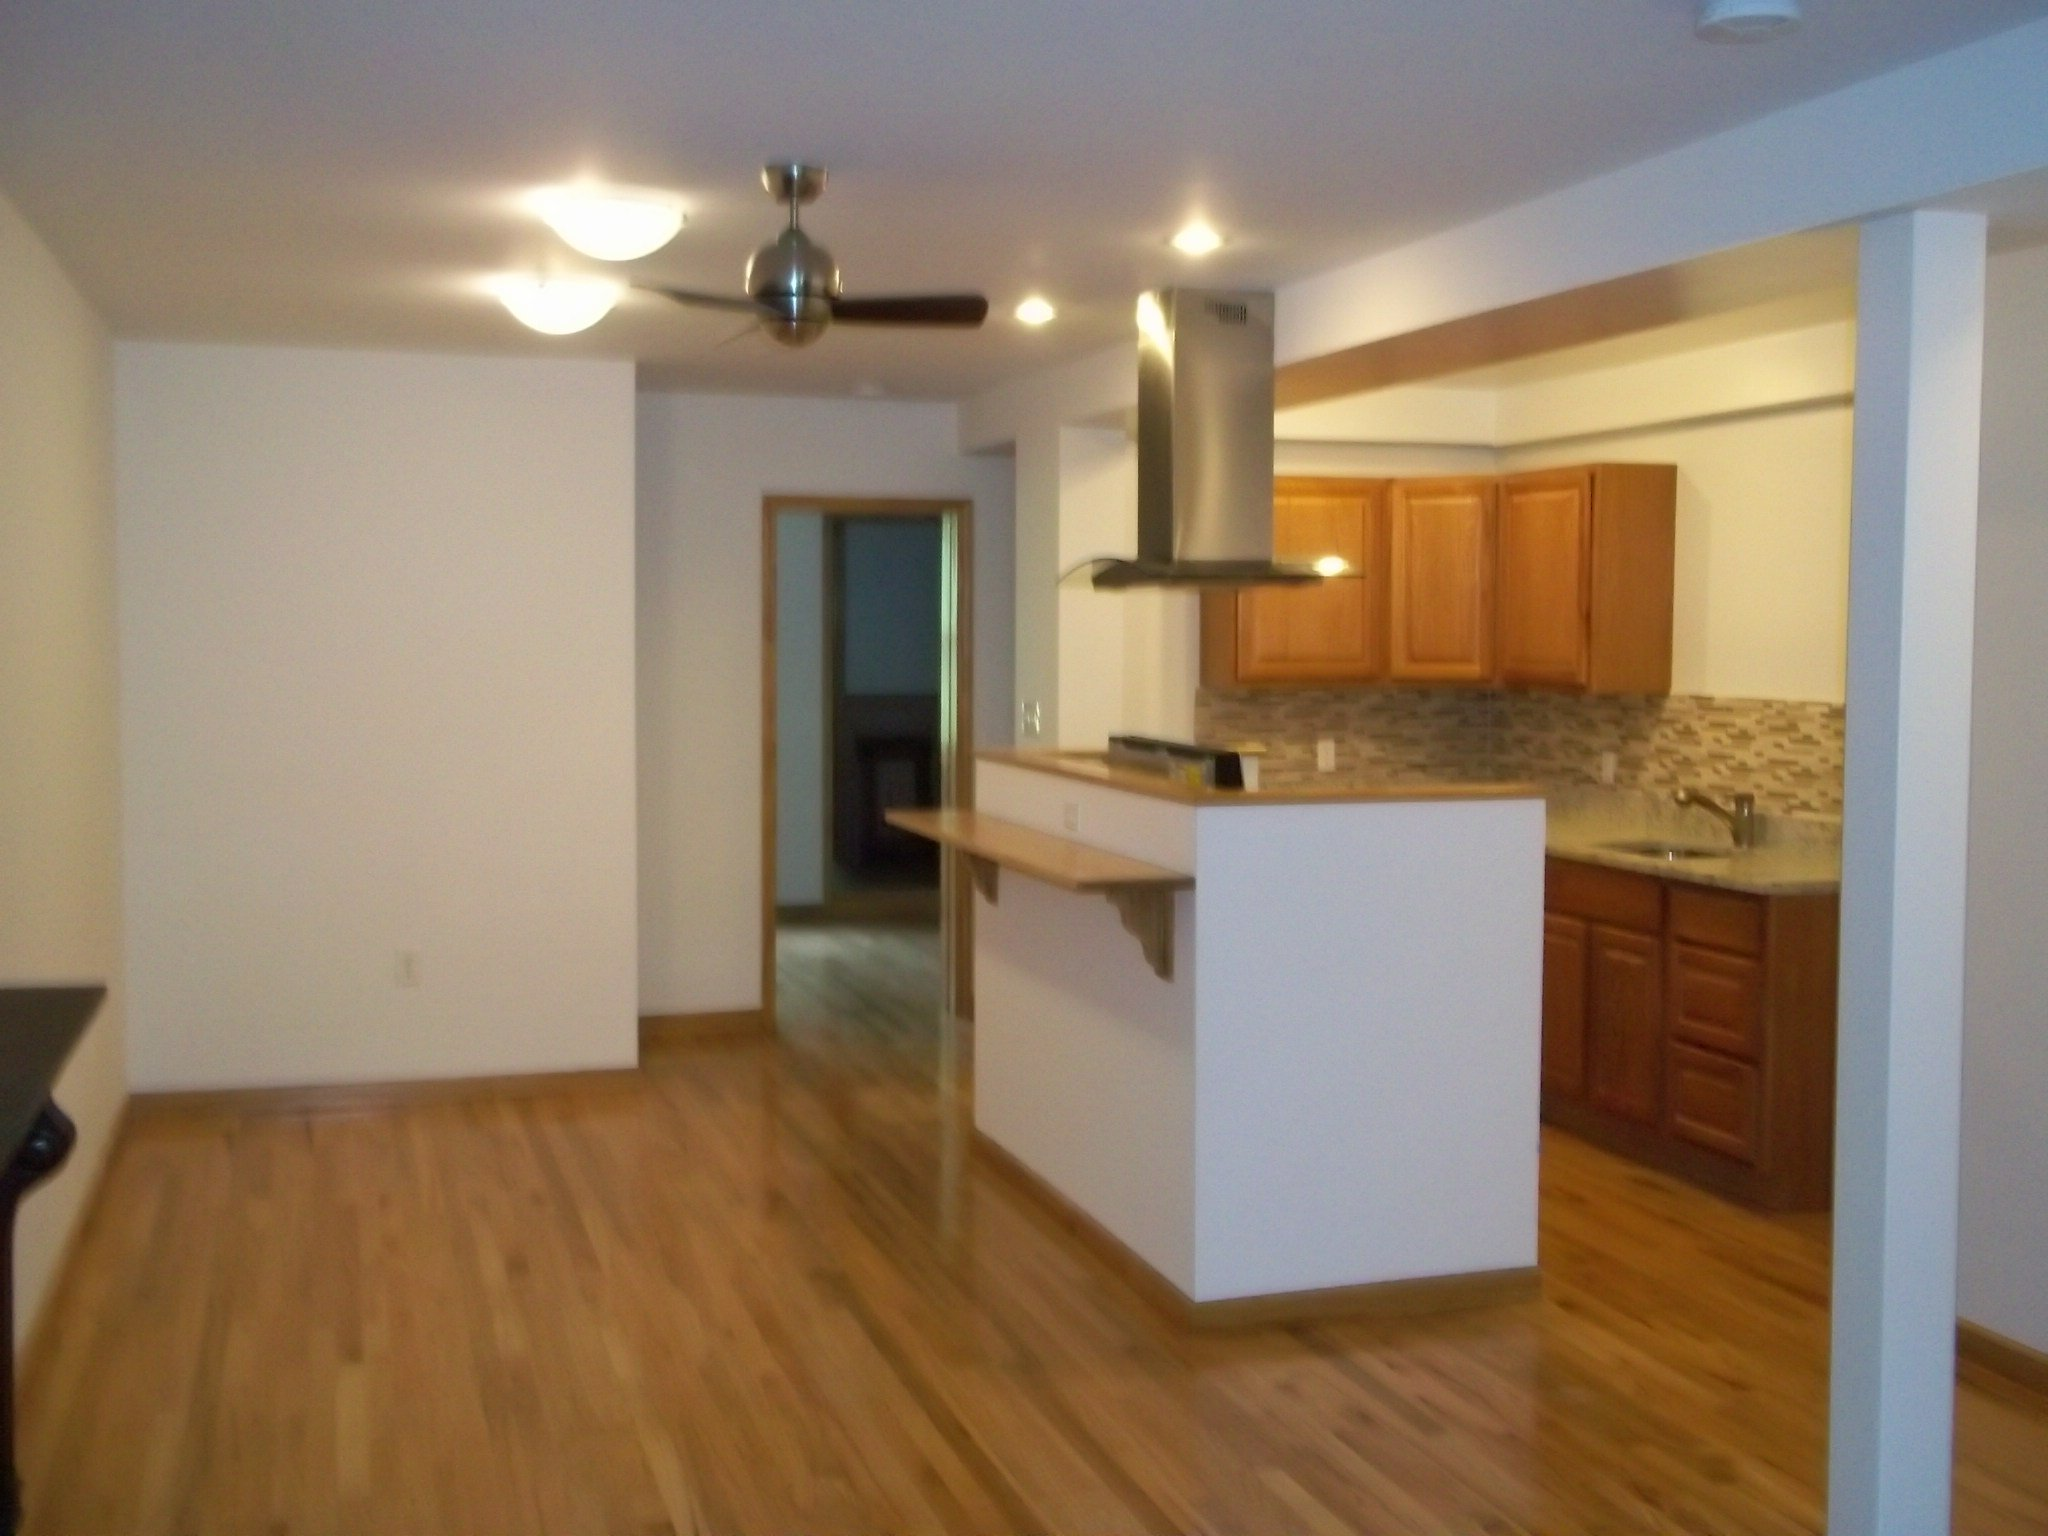 Apartments For Rent In The Stuyvesant Heights 1 Bedroom Apartment For Rent Brooklyn Crg3112